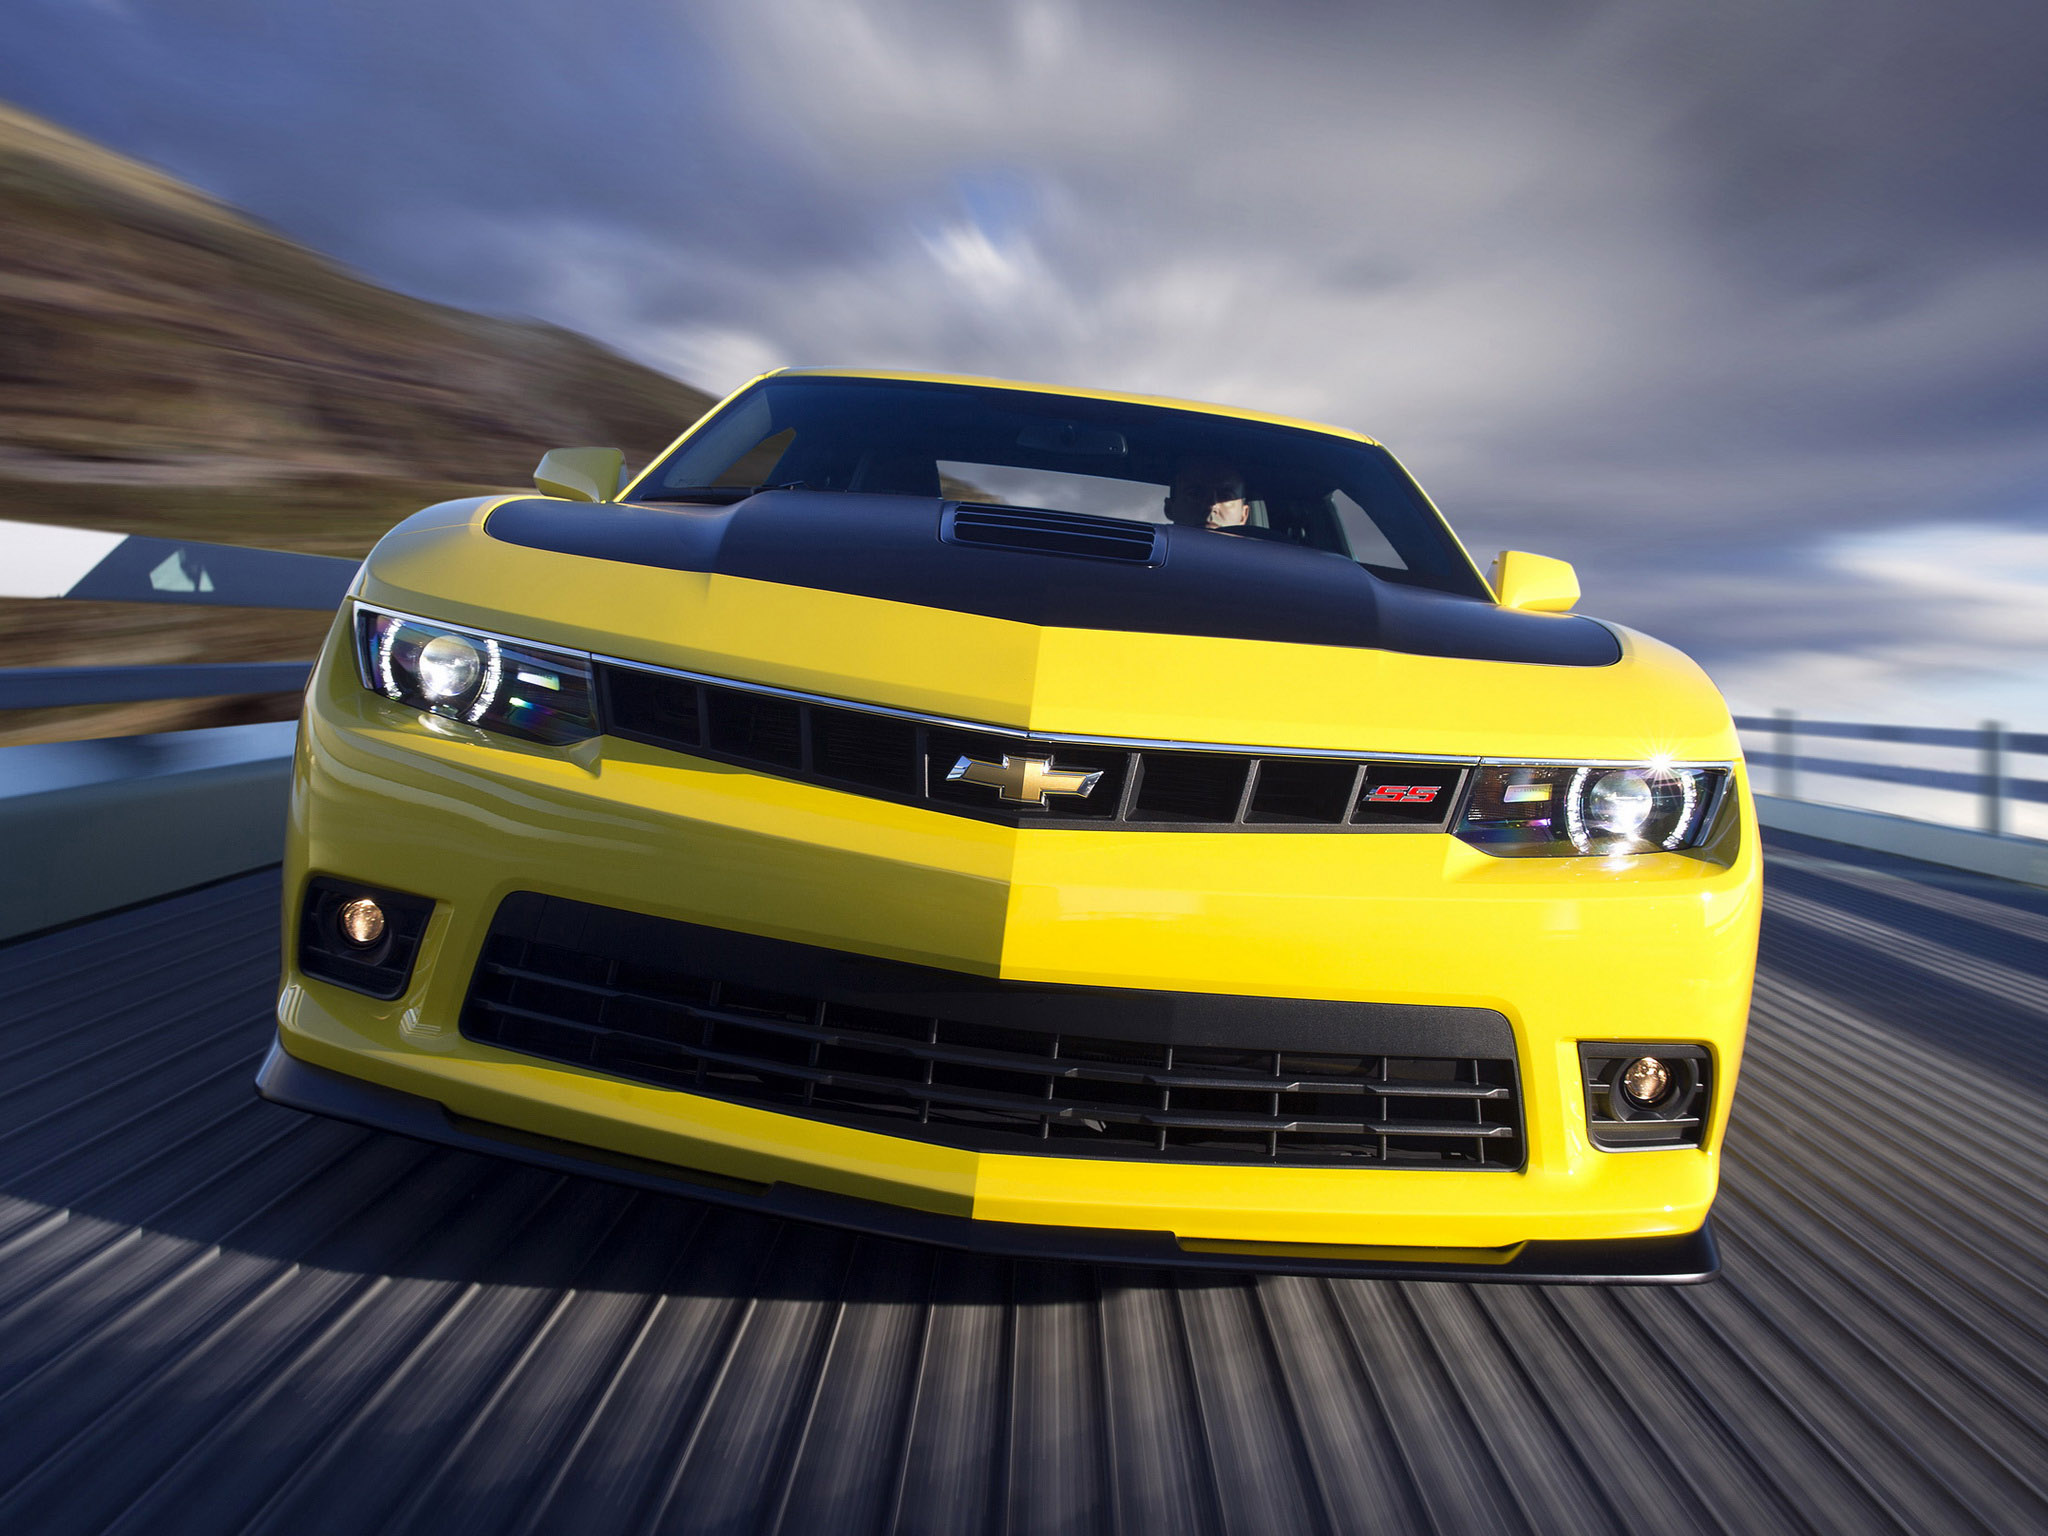 2014 Chevrolet Camaro Ss 1le Muscle S S G Wallpaper 2048x1536